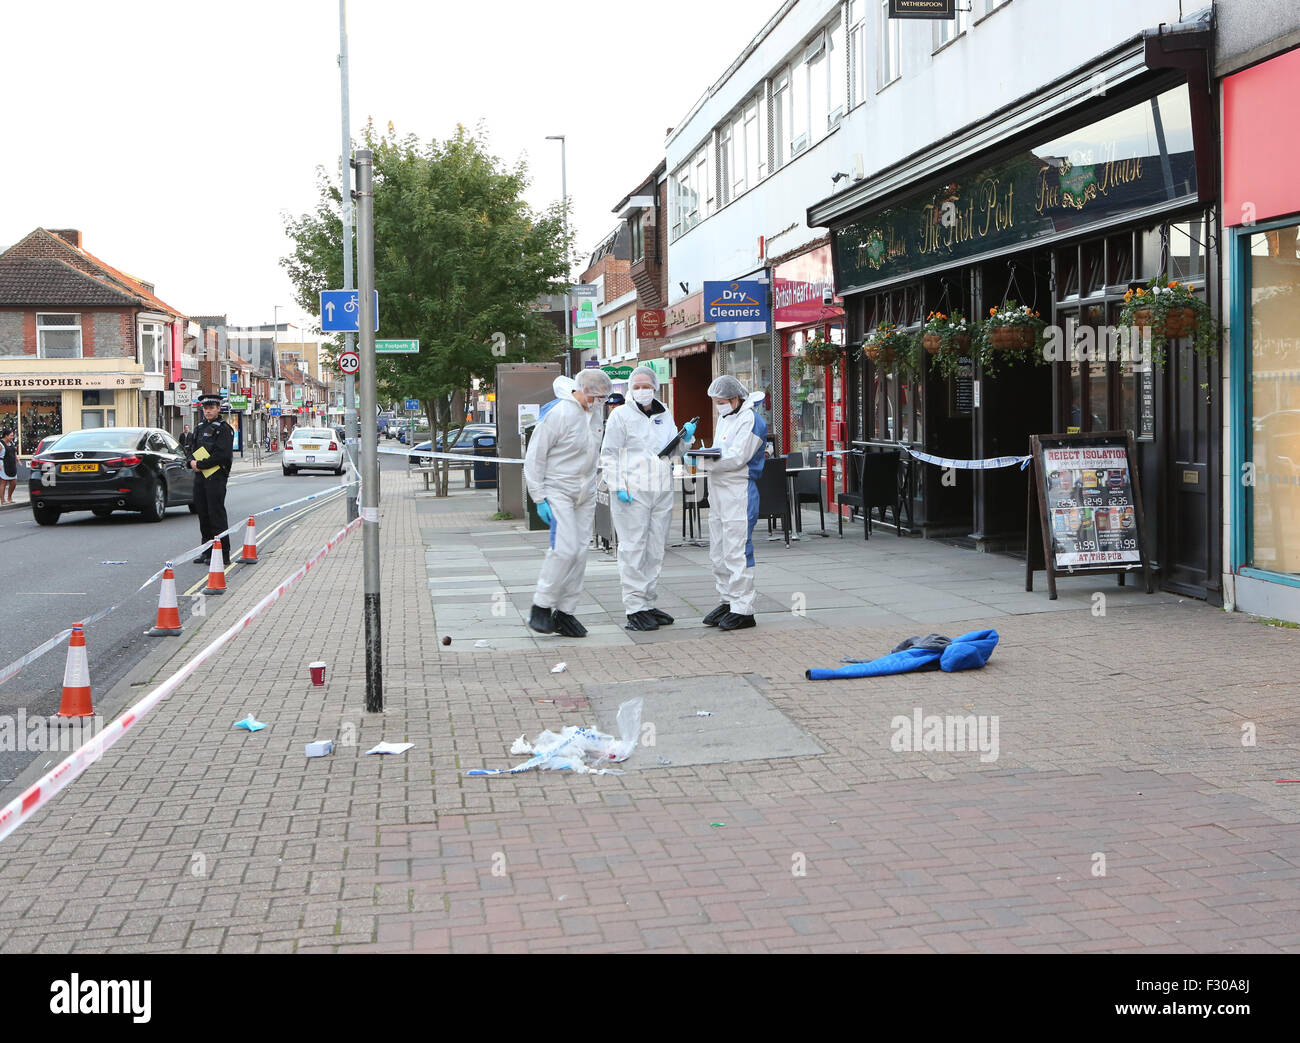 Cosham,Hampshire Saturday 26 September 2015 GV Showing Cosham   High Street An OAP  man was been attacked. Police Stock Photo